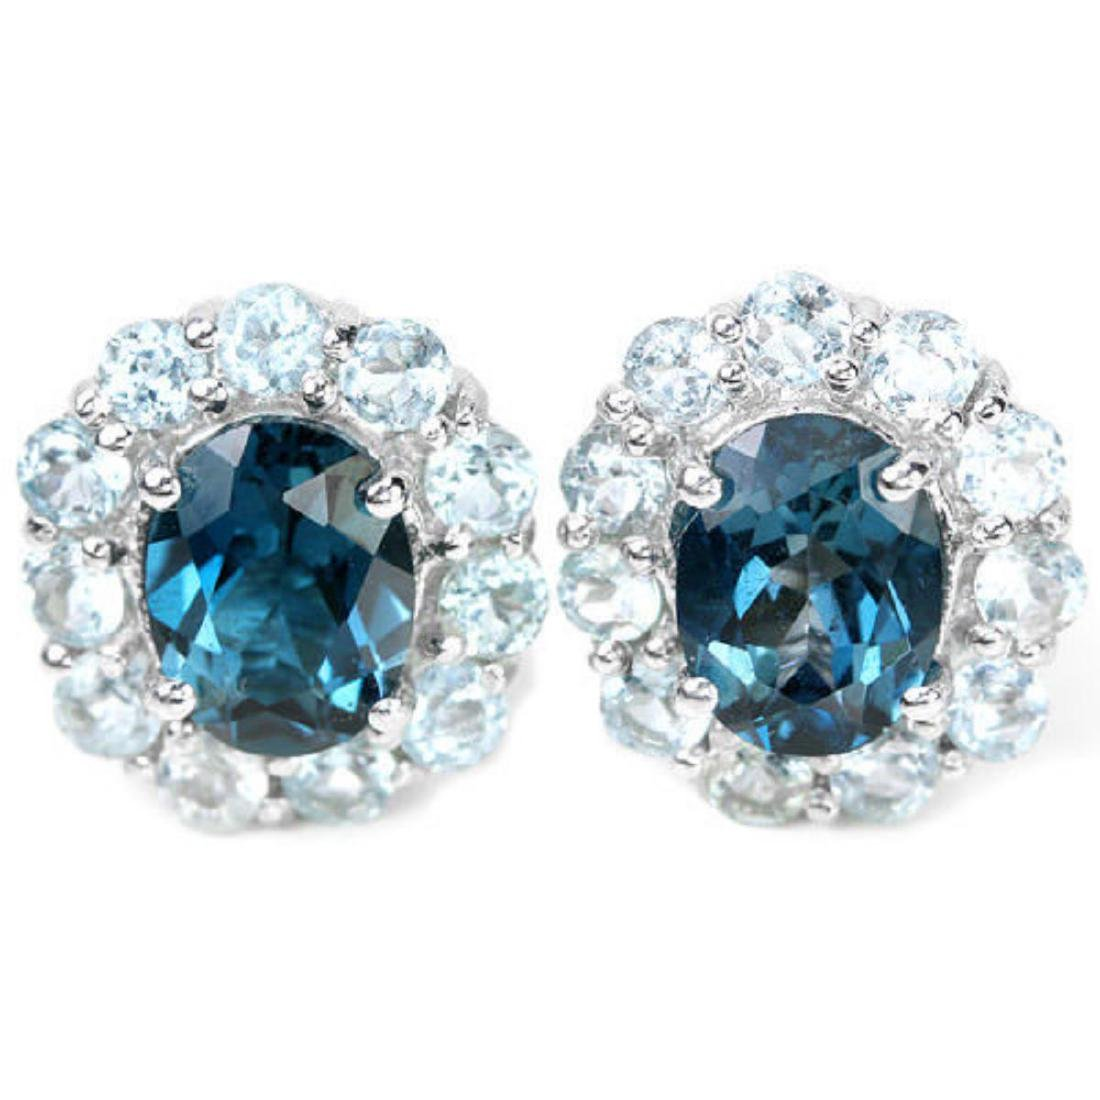 Natural AAA LONDON & SKY BLUE TOPAZ Earrings